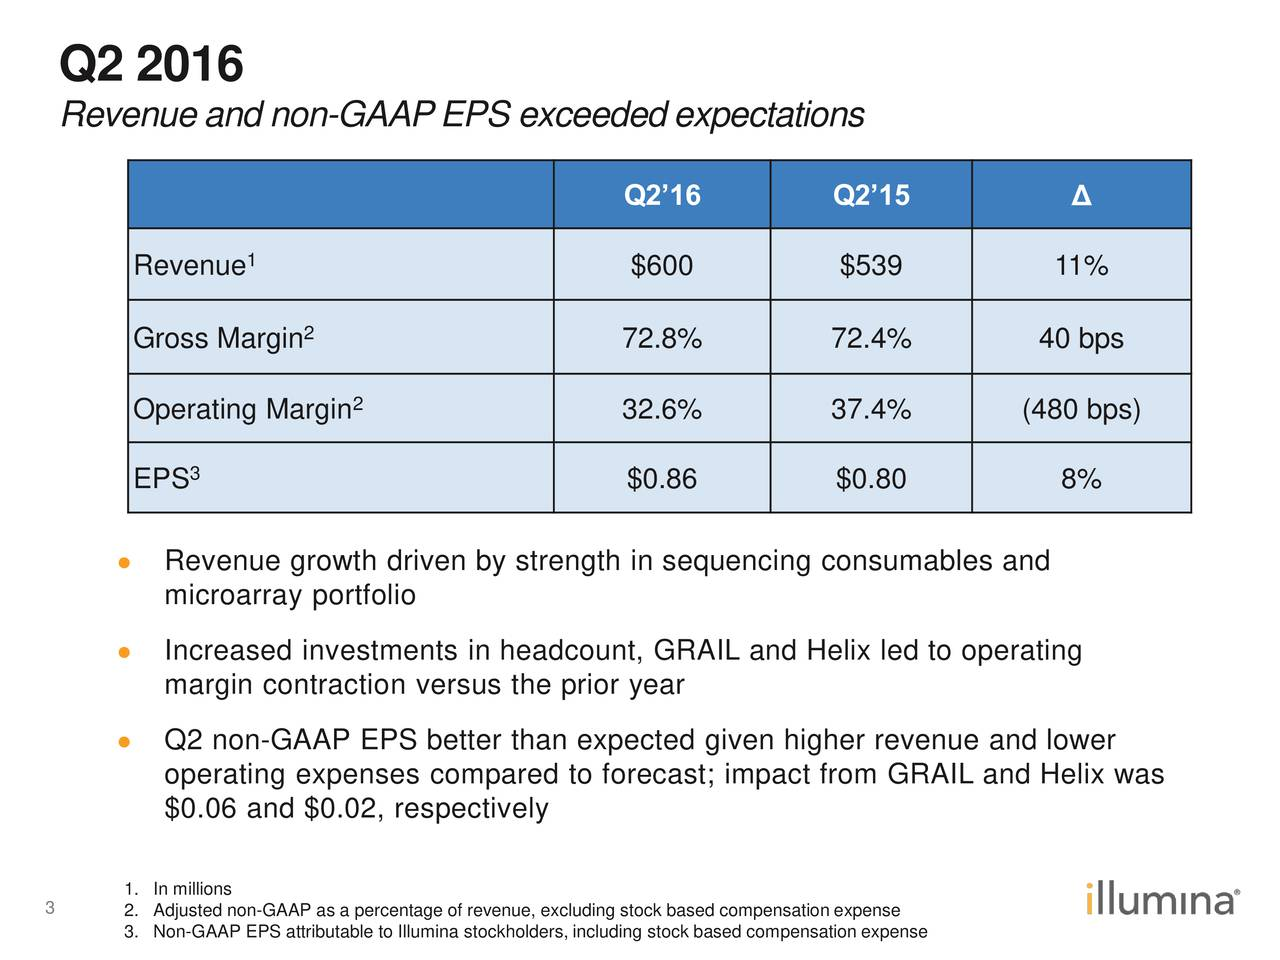 Revenue and non-GAAPEPS exceeded expectations Q216 Q215 1 Revenue $600 $539 11% Gross Margin 2 72.8% 72.4% 40 bps Operating Margin2 32.6% 37.4% (480 bps) 3 EPS $0.86 $0.80 8% Revenue growth driven by strength in sequencing consumables and microarray portfolio Increased investments in headcount, GRAIL and Helix led to operating margin contraction versus the prior year Q2 non-GAAP EPS better than expected given higher revenue and lower operating expenses compared to forecast; impact from GRAIL and Helix was $0.06 and $0.02, respectively 1. In millions 3 2. Adjusted non-GAAP as a percentage of revenue, excluding stock based compensation expense 3. Non-GAAP EPS attributable to Illumina stockholders, including stock based compensation expense